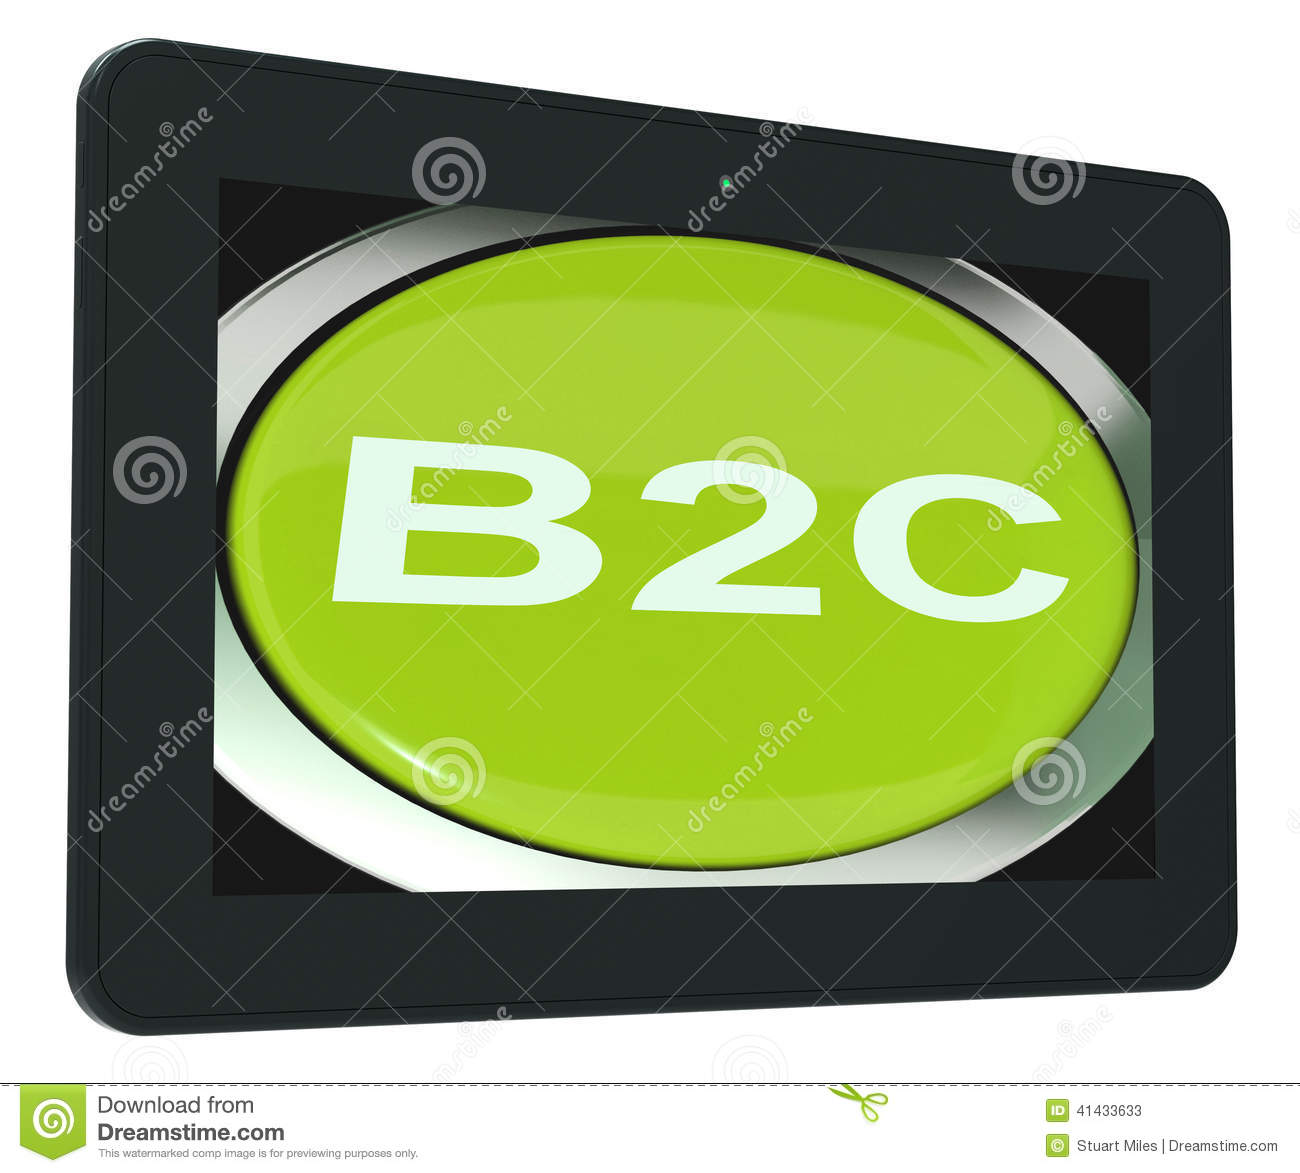 Consumer Buying: B2c Tablet Means Business To Consumer Buying Or Selling